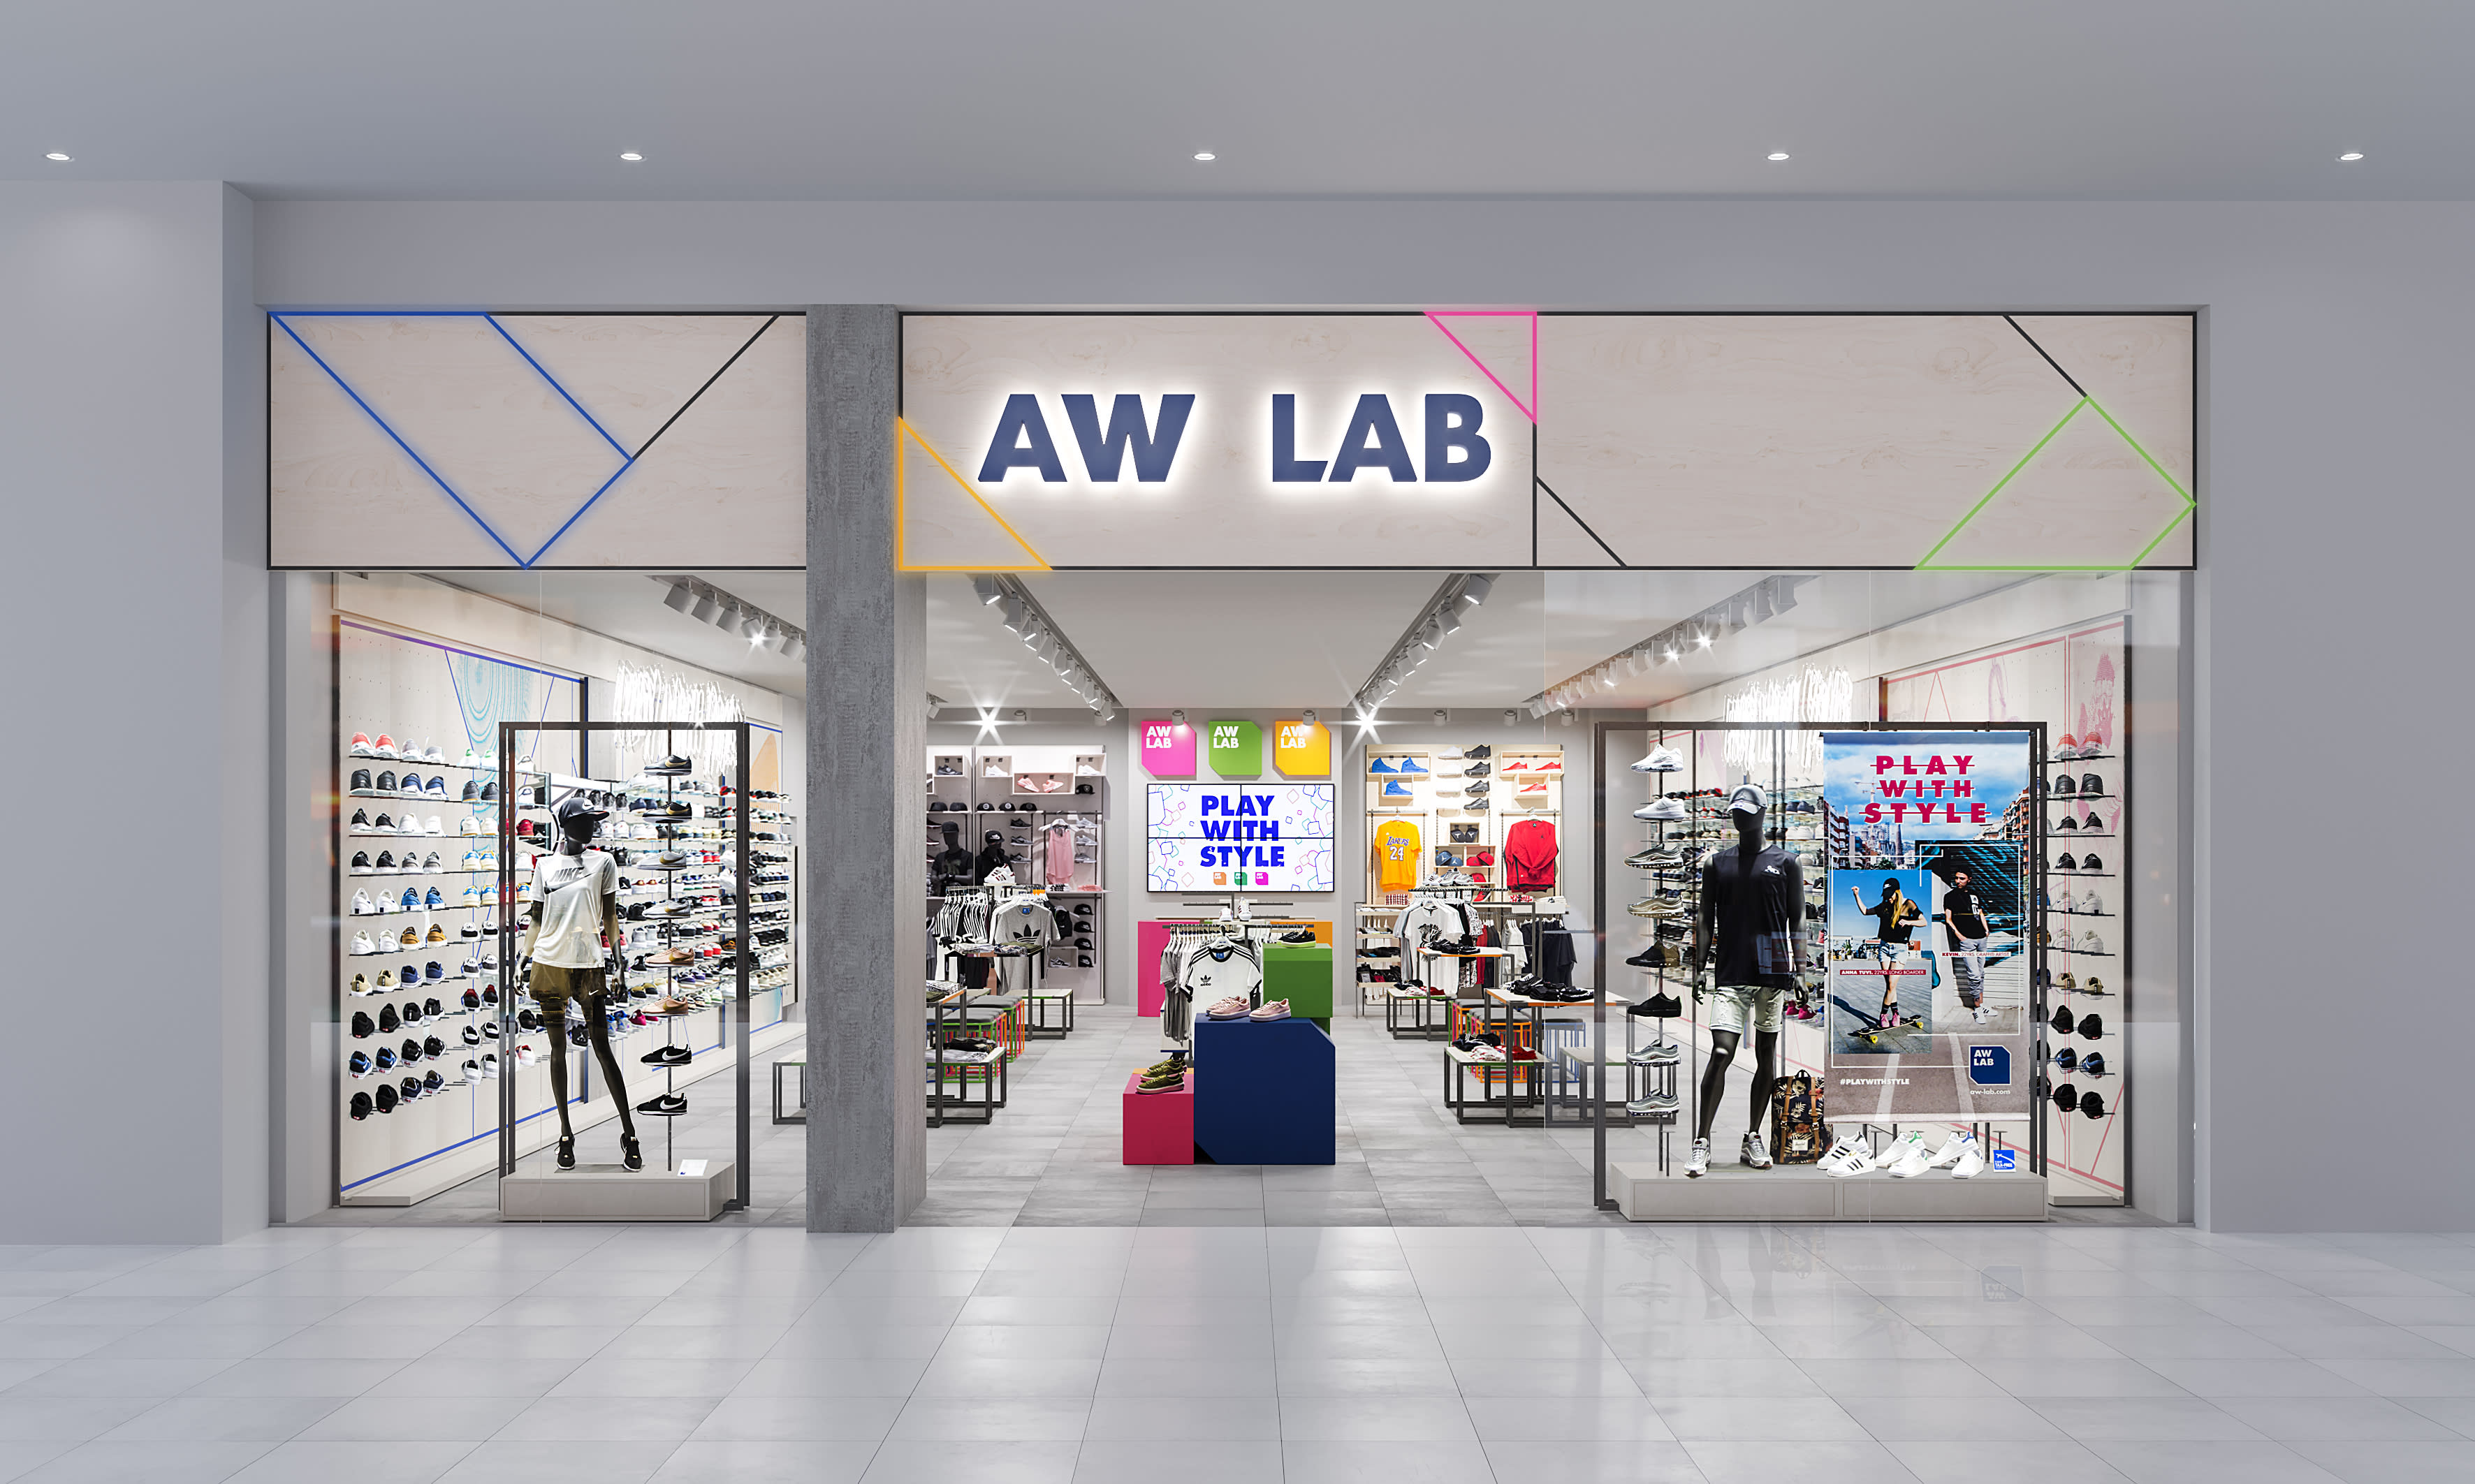 Bata's sport style retailer AW LAB opens first store in Asia